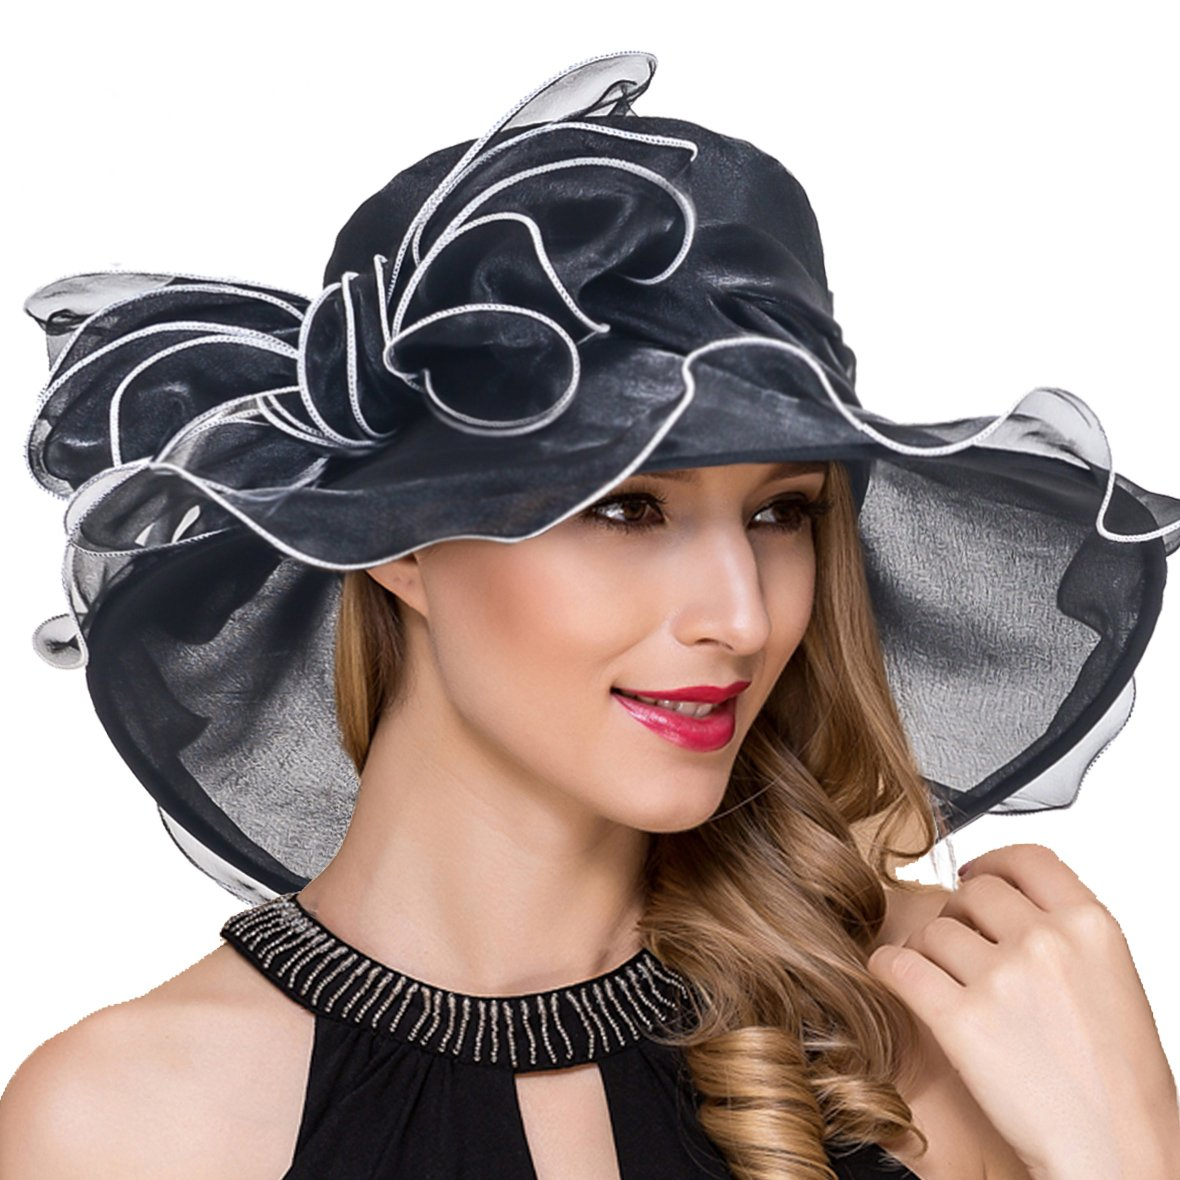 Kentucky Derby Hats for Women Organza Fascinator Church Tea Party Dress Wedding Hat Black